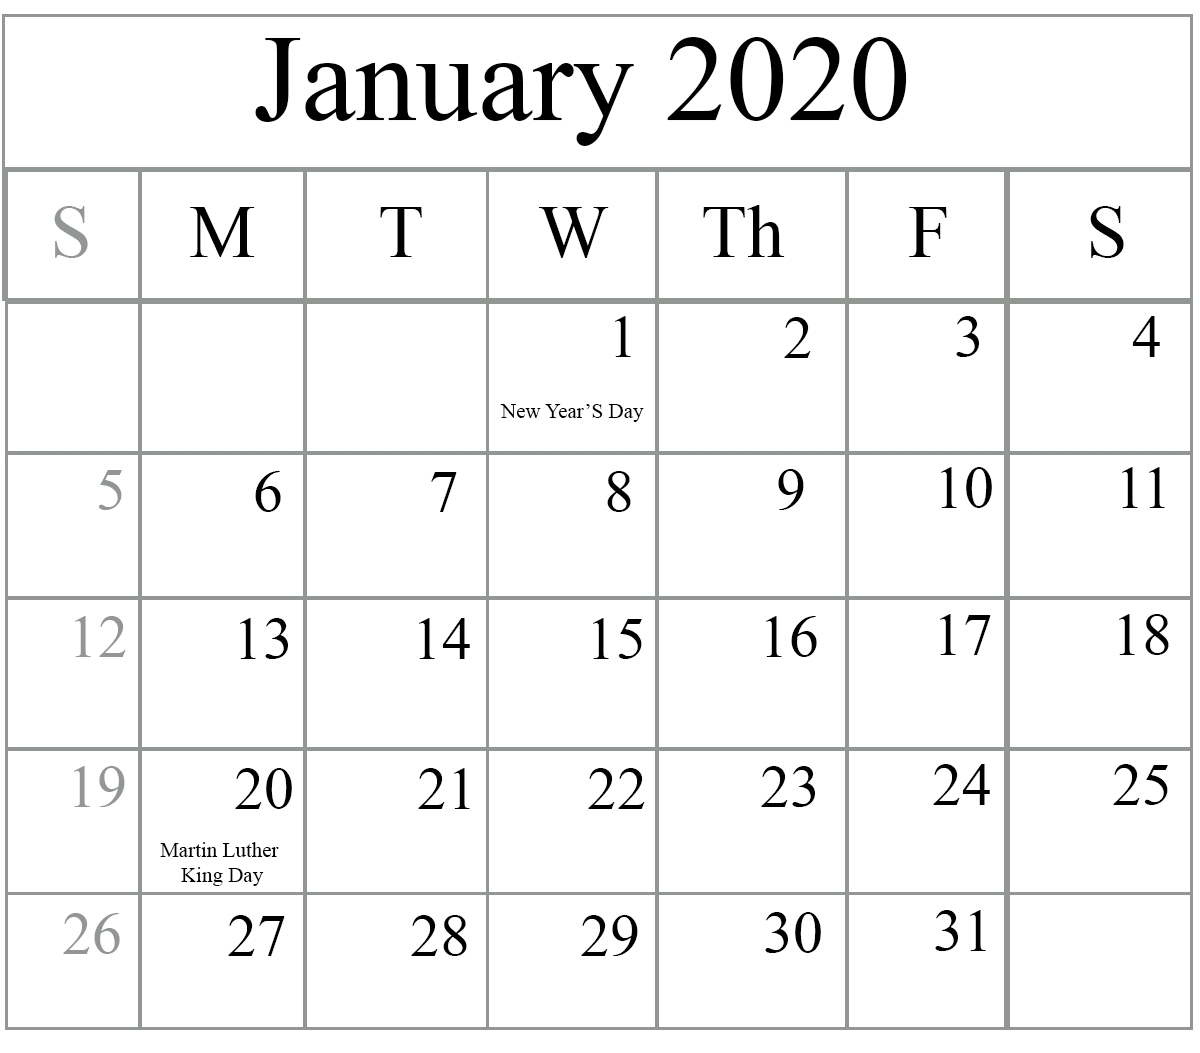 Free Blank January 2020 Calendar Printable In Pdf, Word-January 2020 Calendar Public Holidays